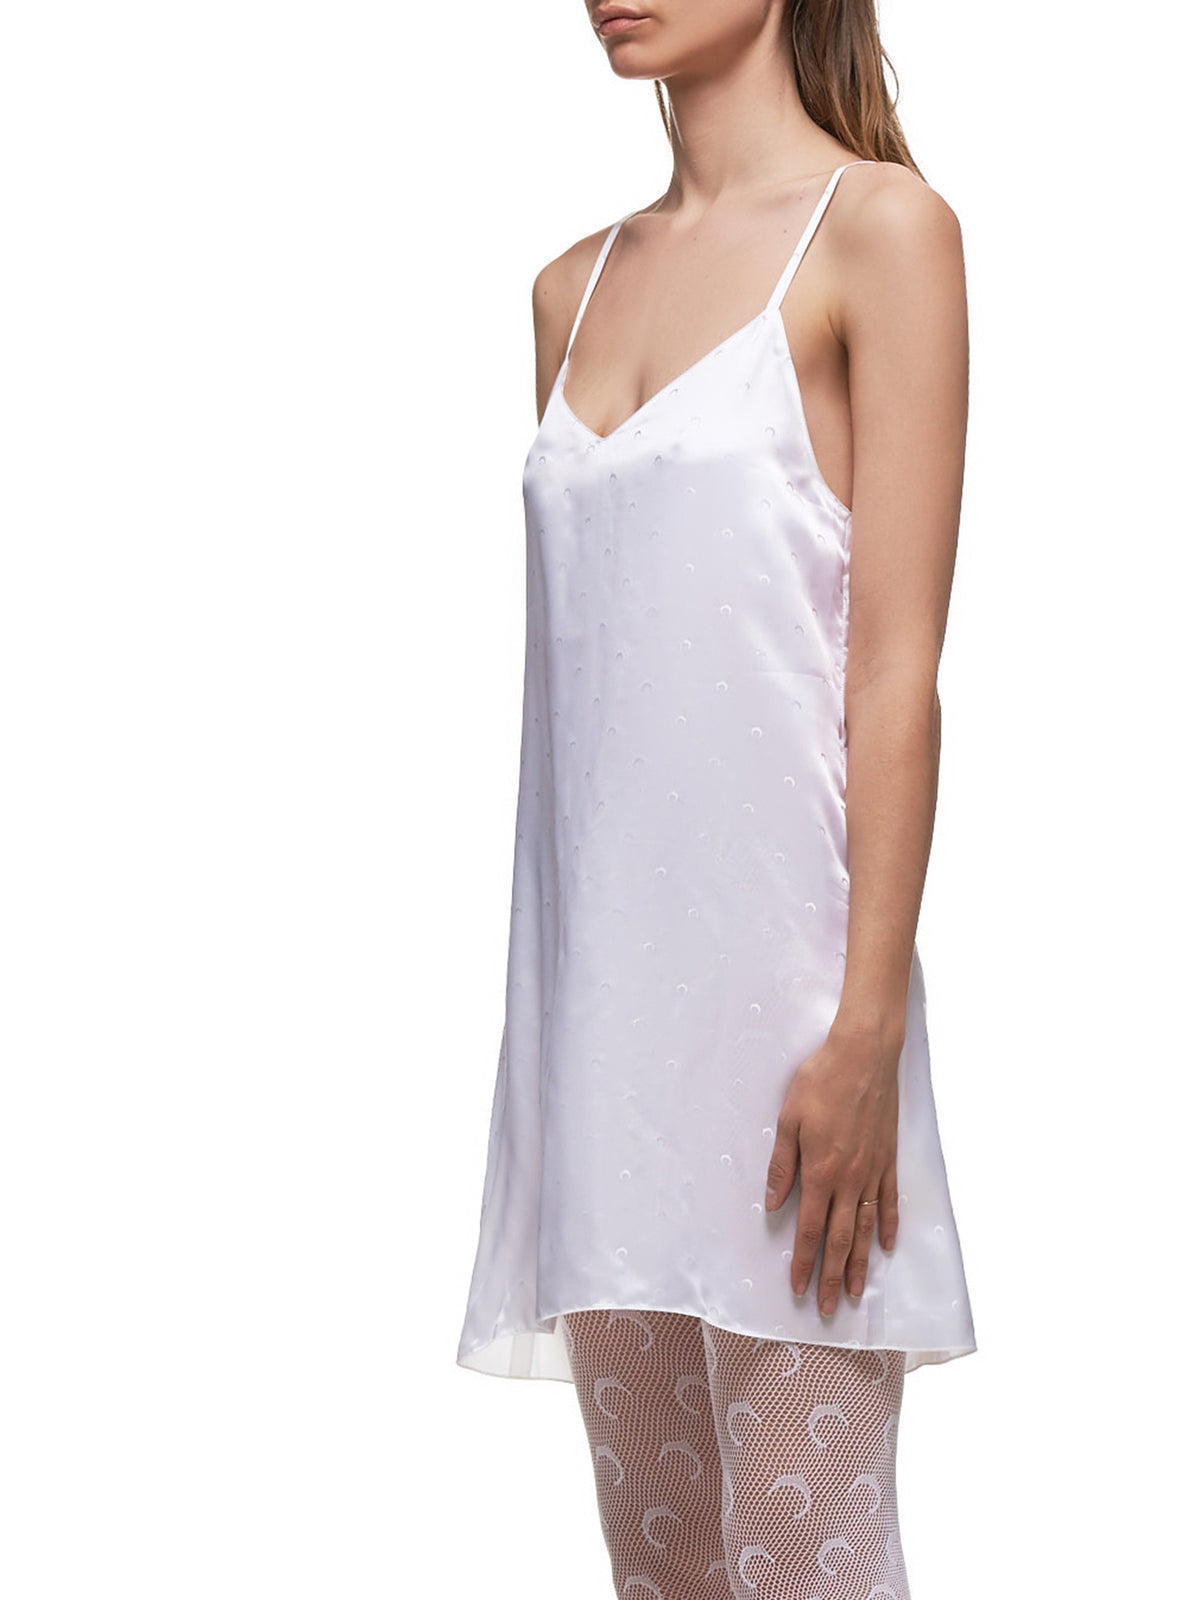 Slip Dress (UW008-WHITE-JACQUARD)